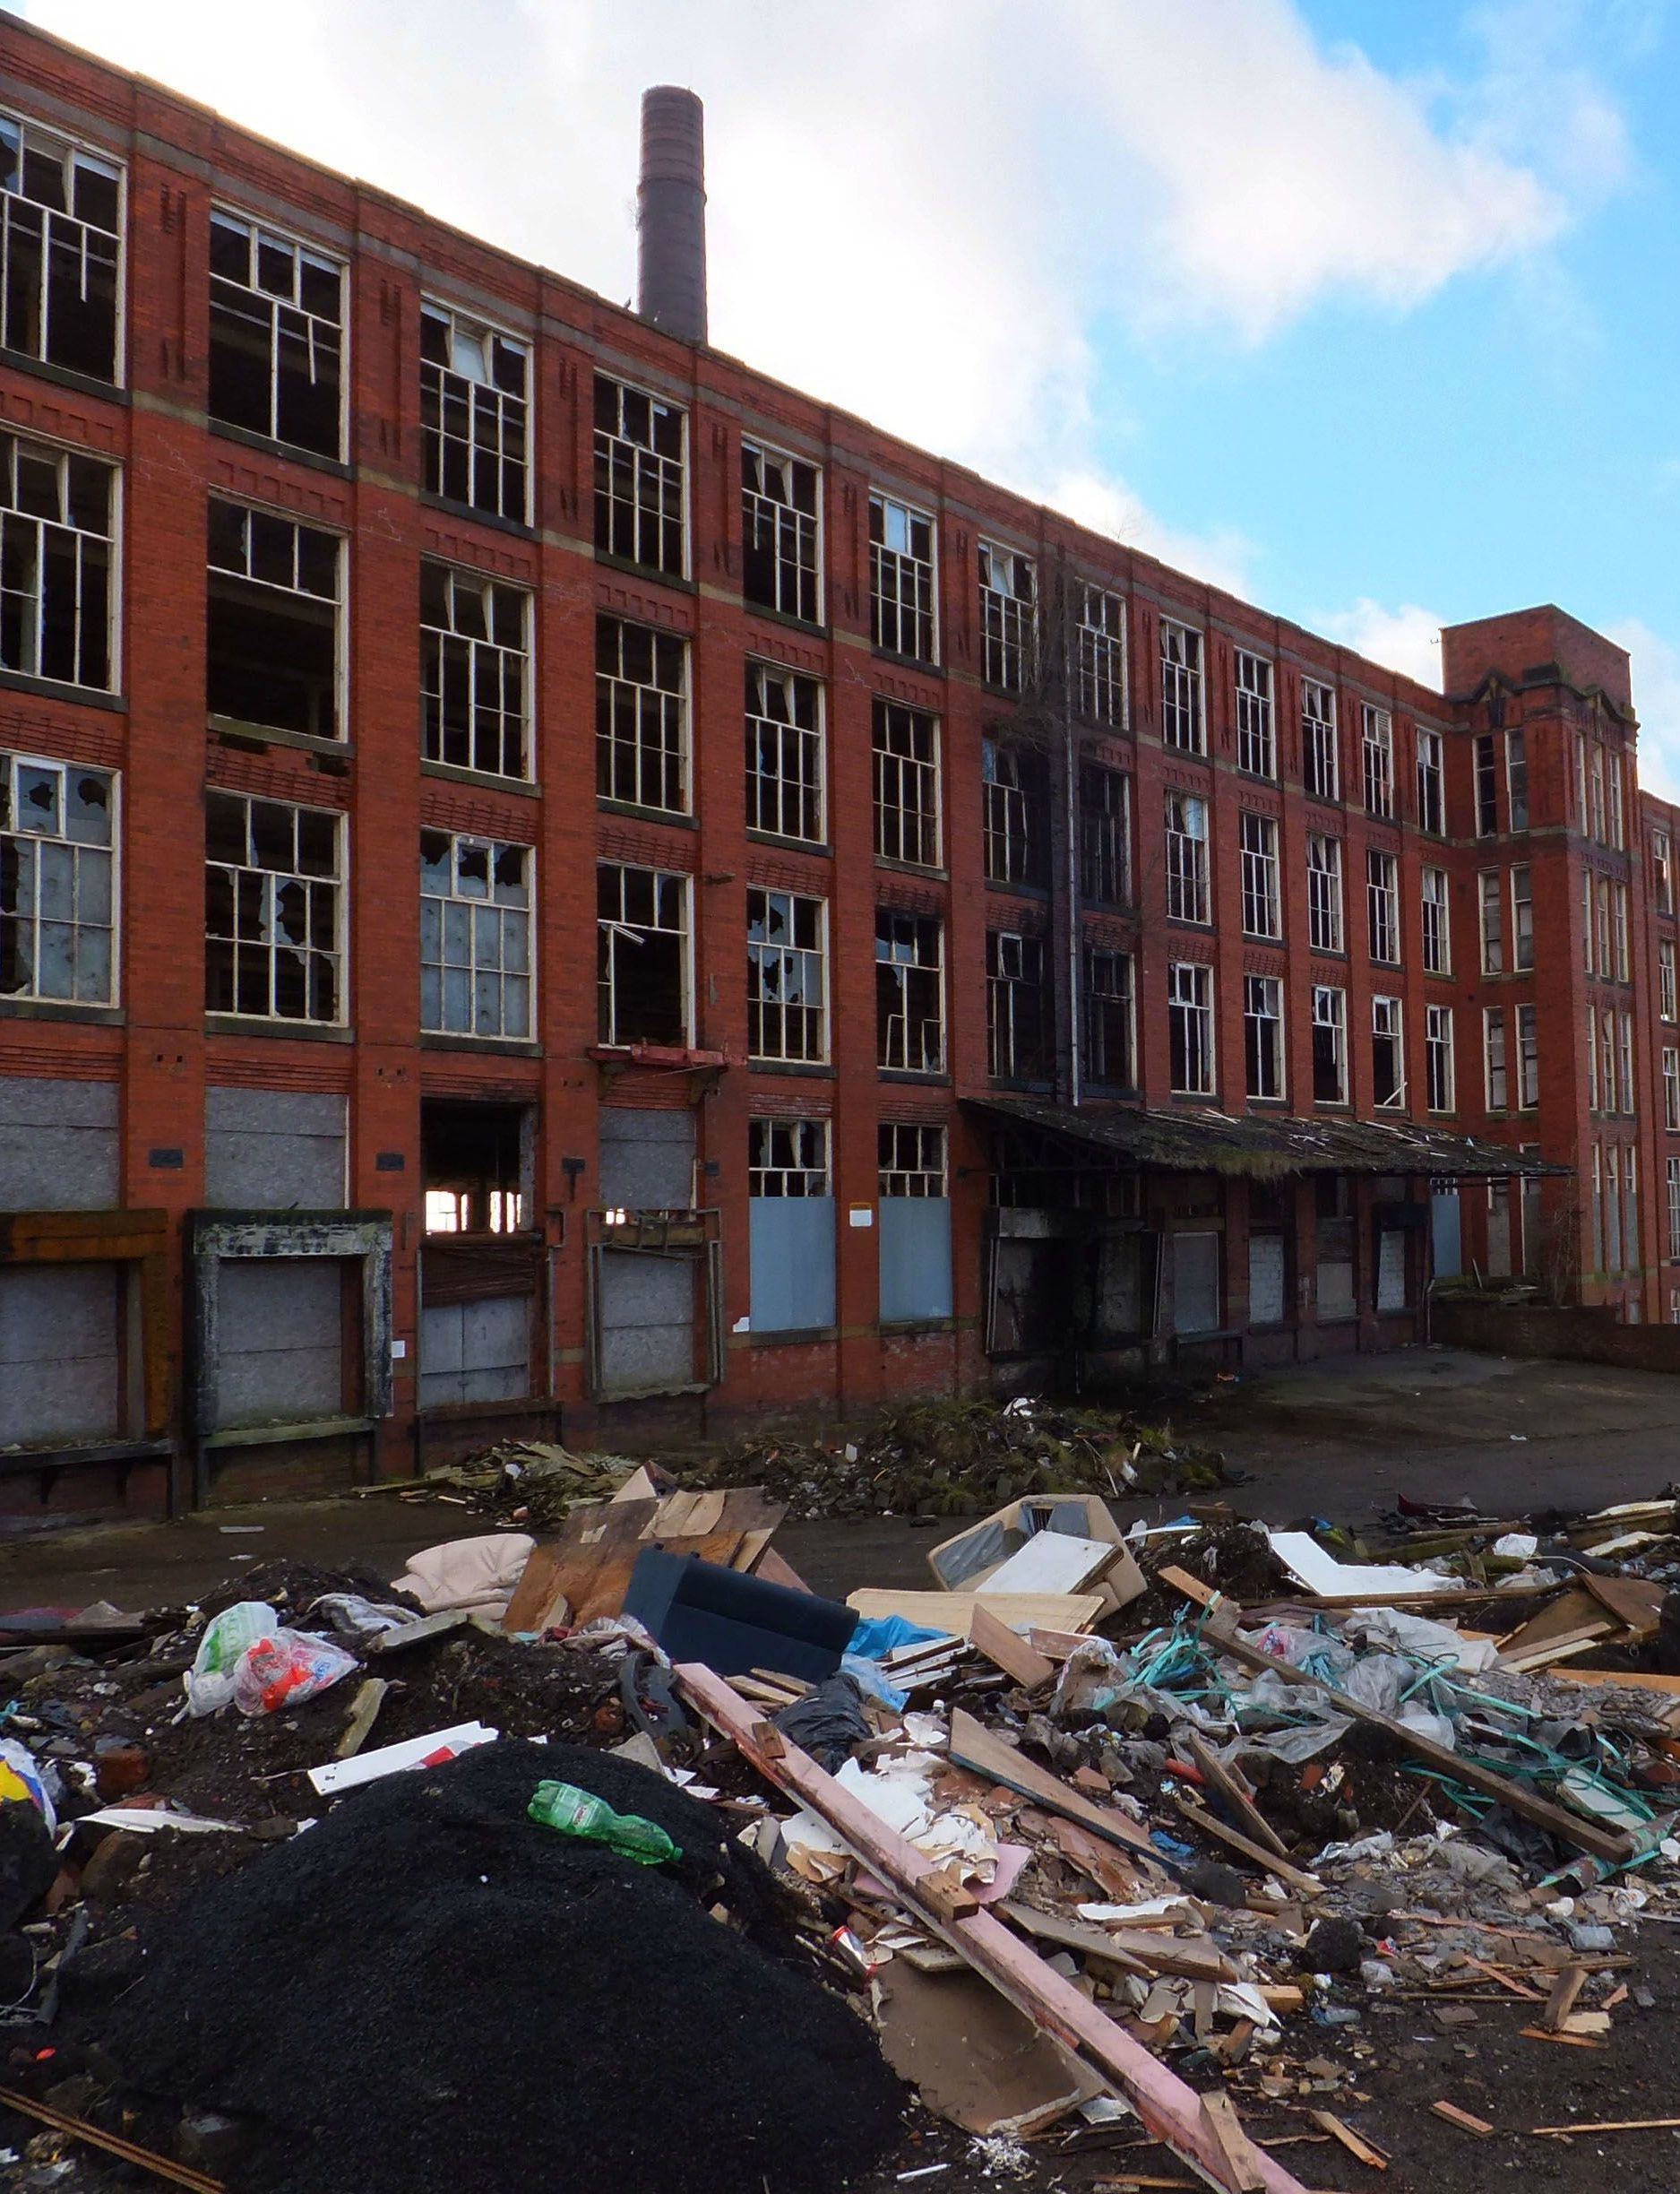 Disused factory, Oldham